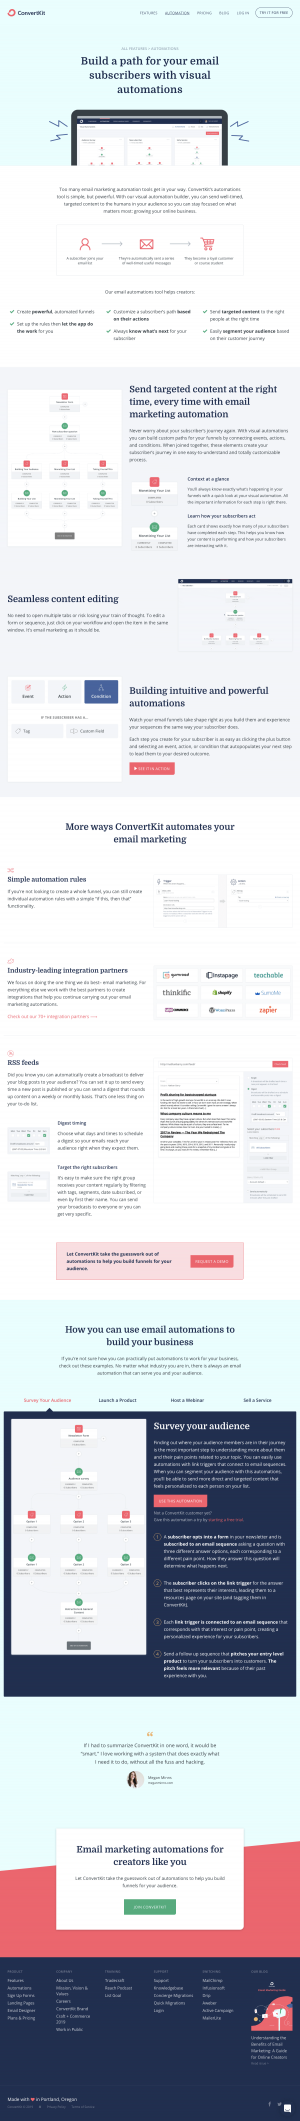 ConvertKit - Features page 2